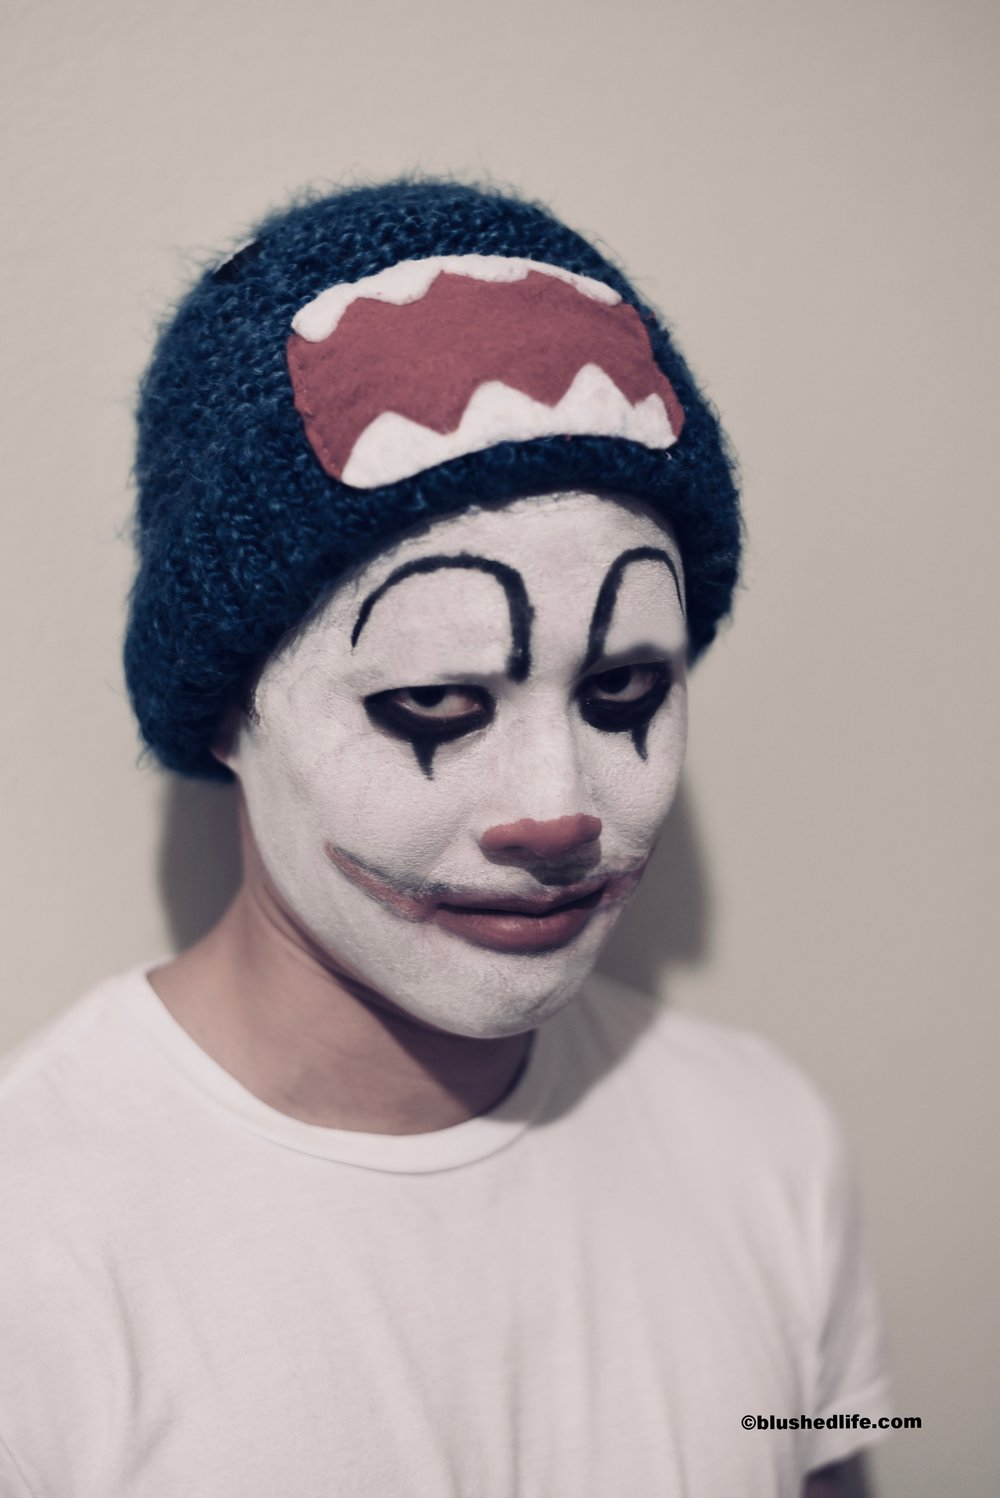 Creepy Clown Makeup_DSC_9330.jpg